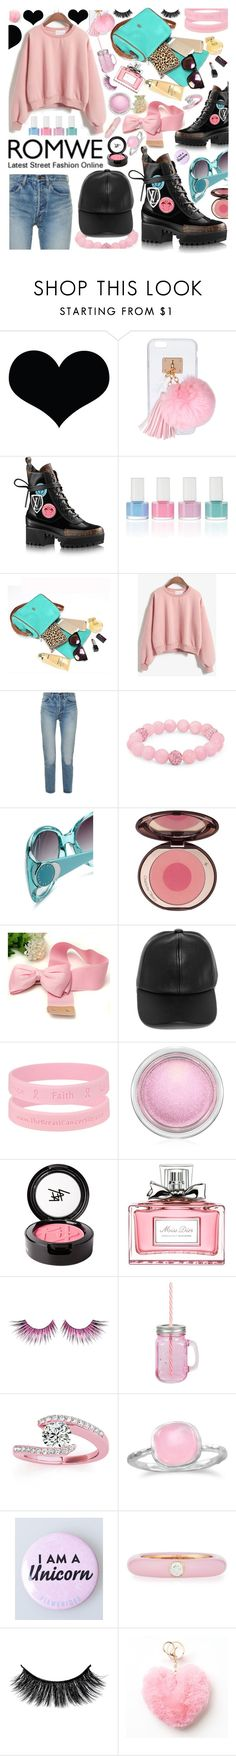 """ROMWE CONTEST -  ""PINK SWEATSHIRT"""" by anin-kutak ❤ liked on Polyvore featuring Ashlyn'd, Yves Saint Laurent, Palm Beach Jewelry, Marc by Marc Jacobs, Charlotte Tilbury, LULUS, MAC Cosmetics, Beauty Is Life, Christian Dior and MAKE UP FOR EVER"